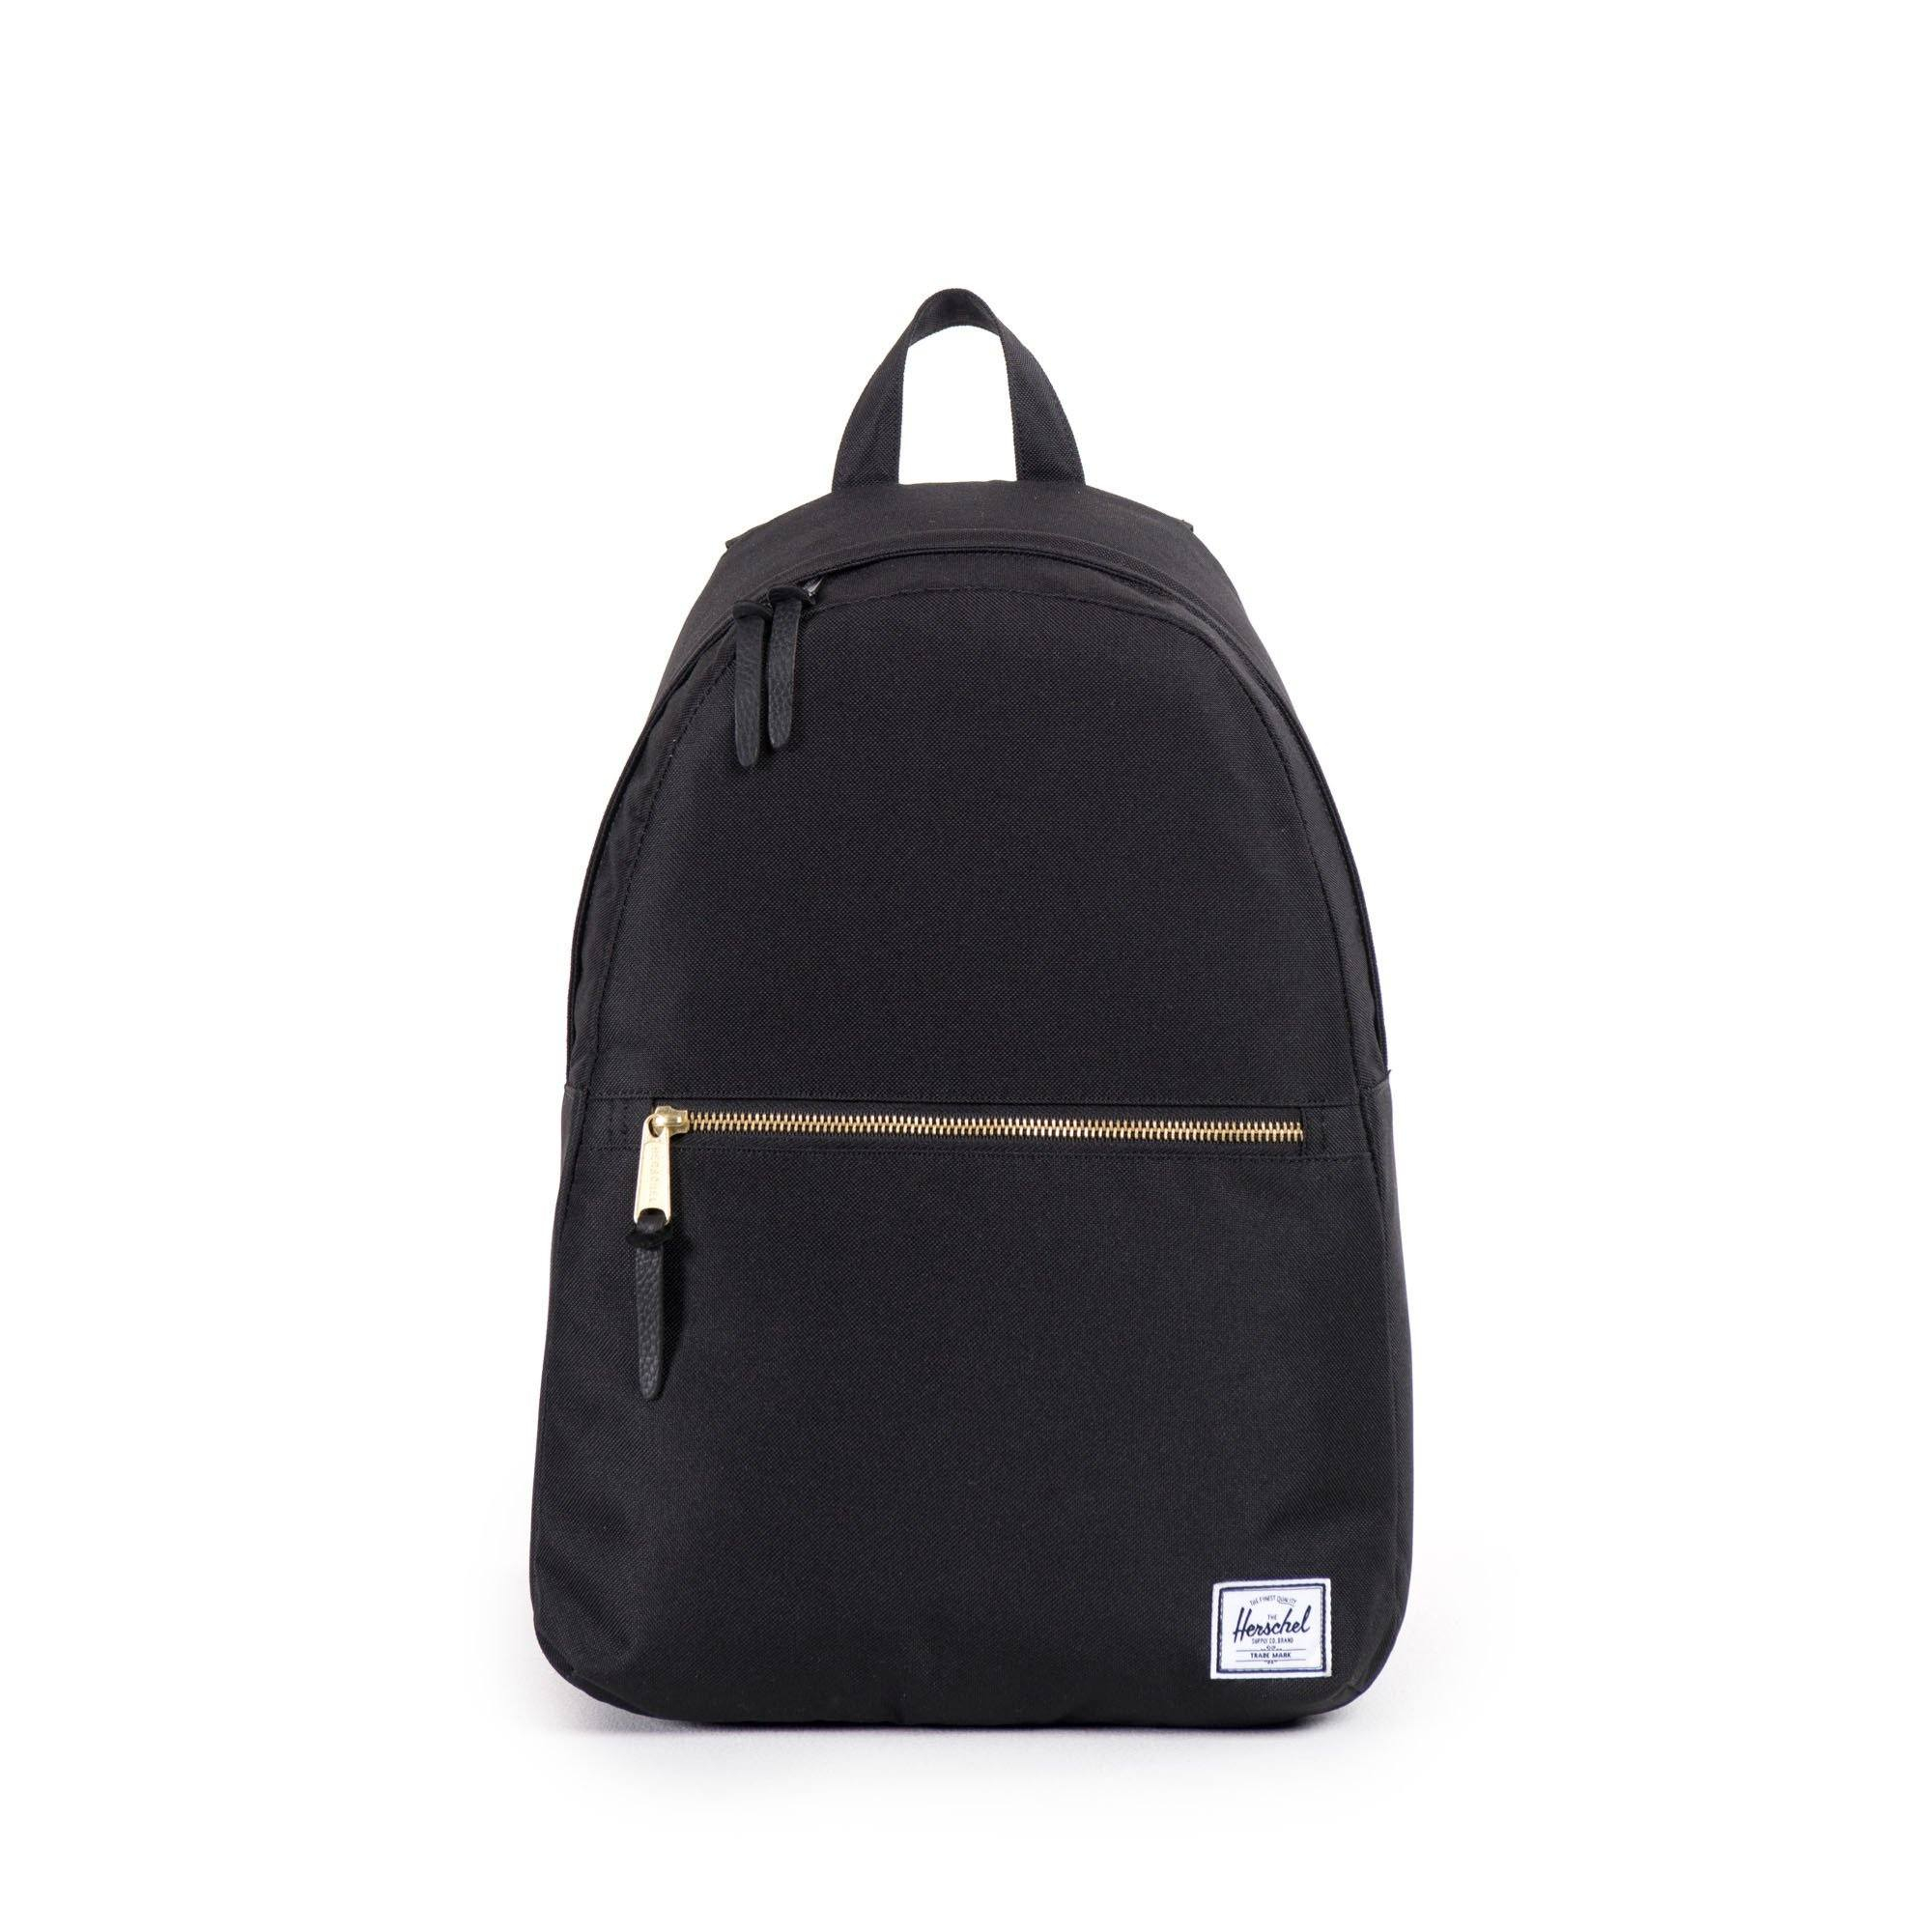 Herschel Supply Co. Town Backpack | Mid-Volume - Jet-Setter.ca